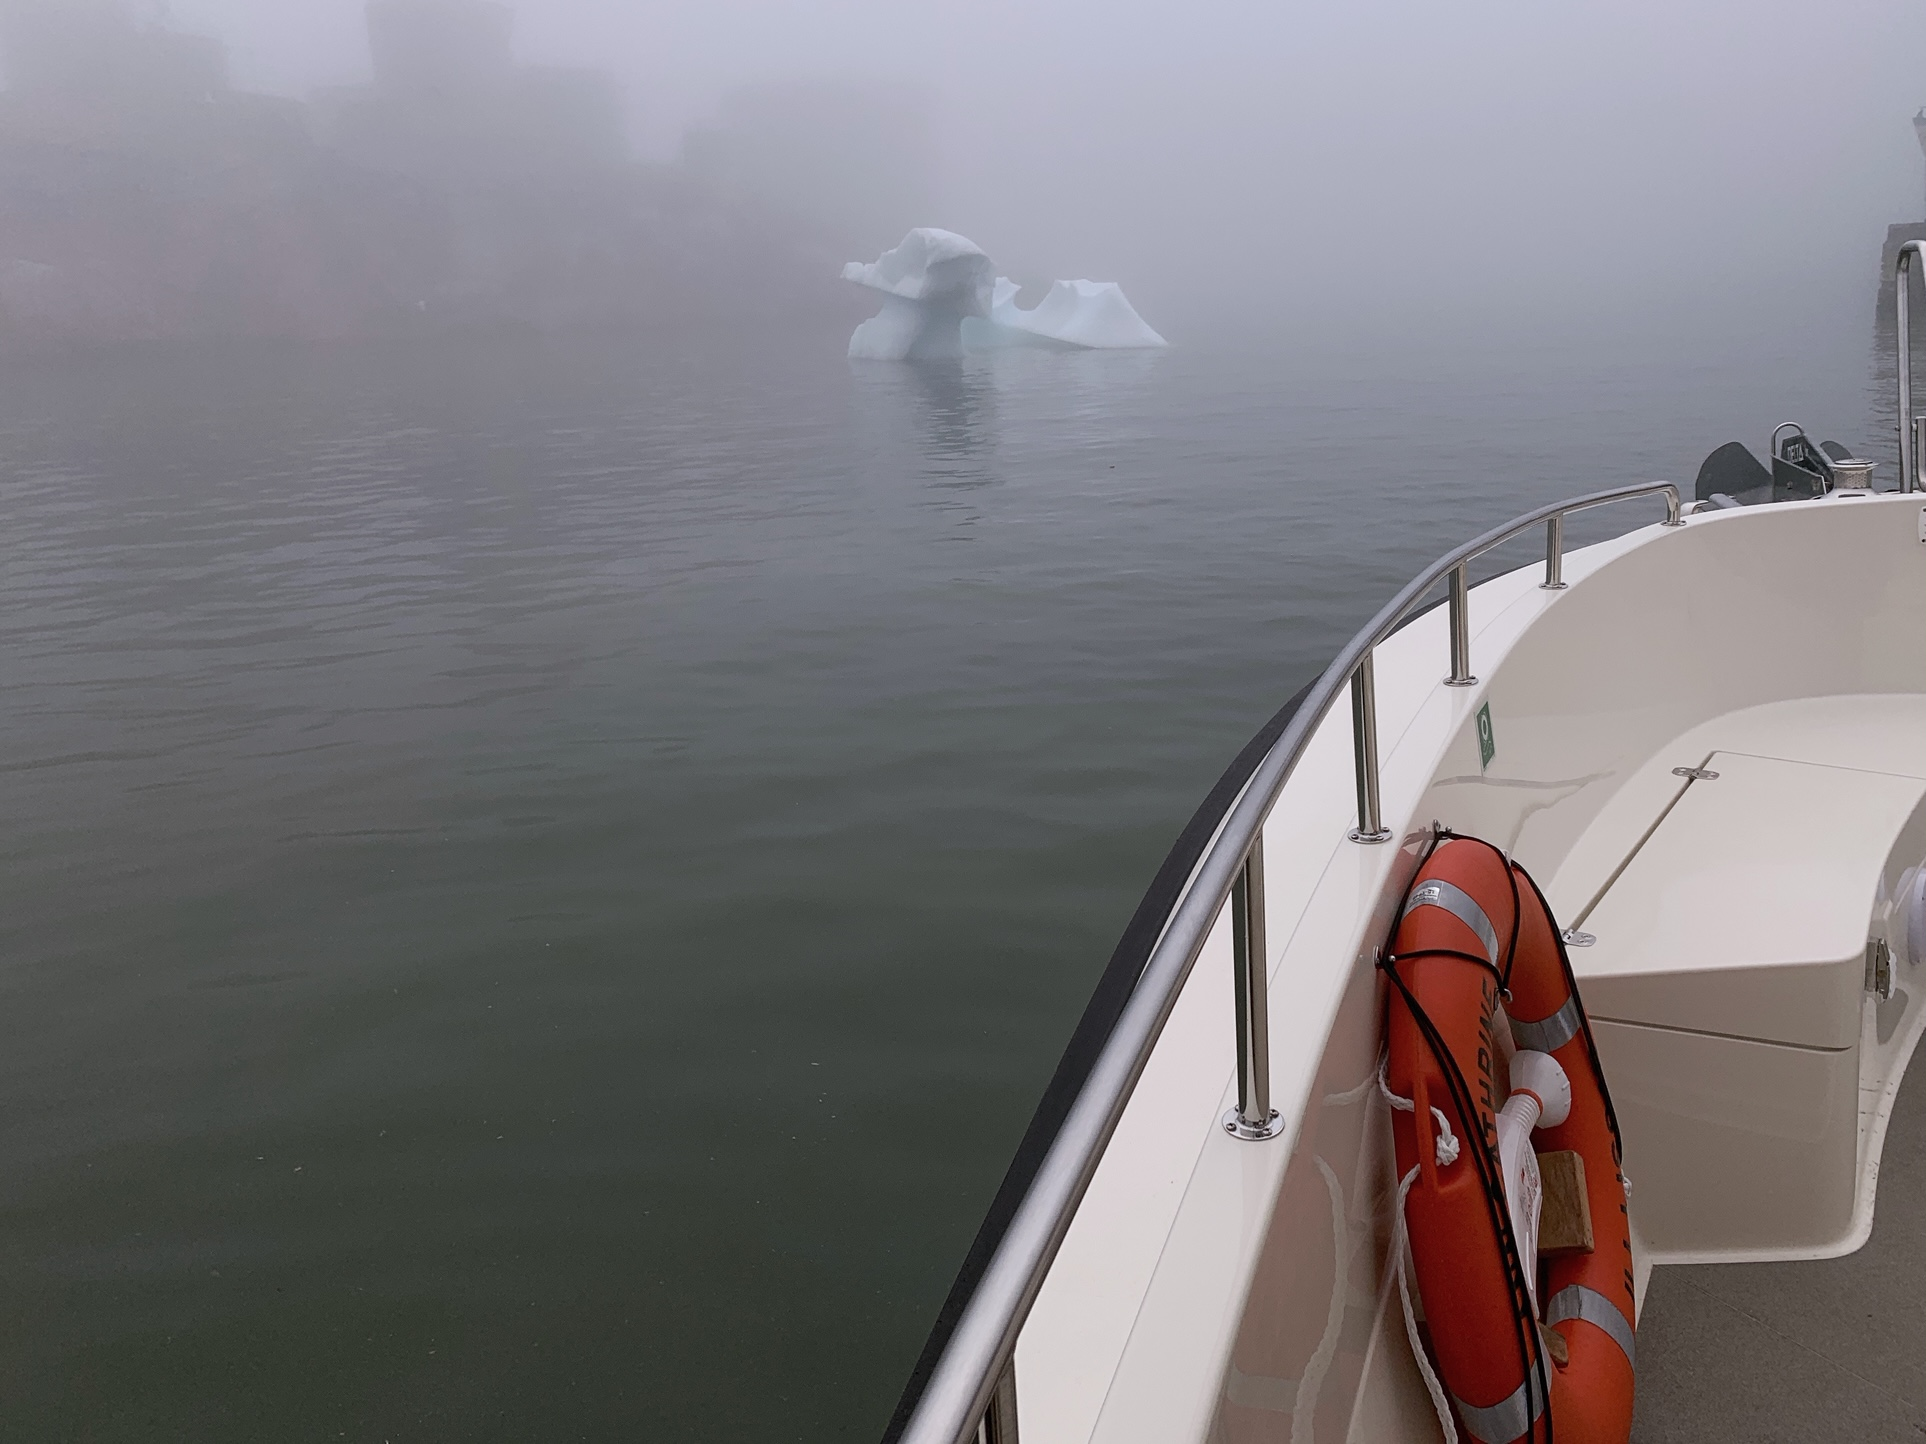 Foggy Ilulissat harbour on our first night's boat ride.